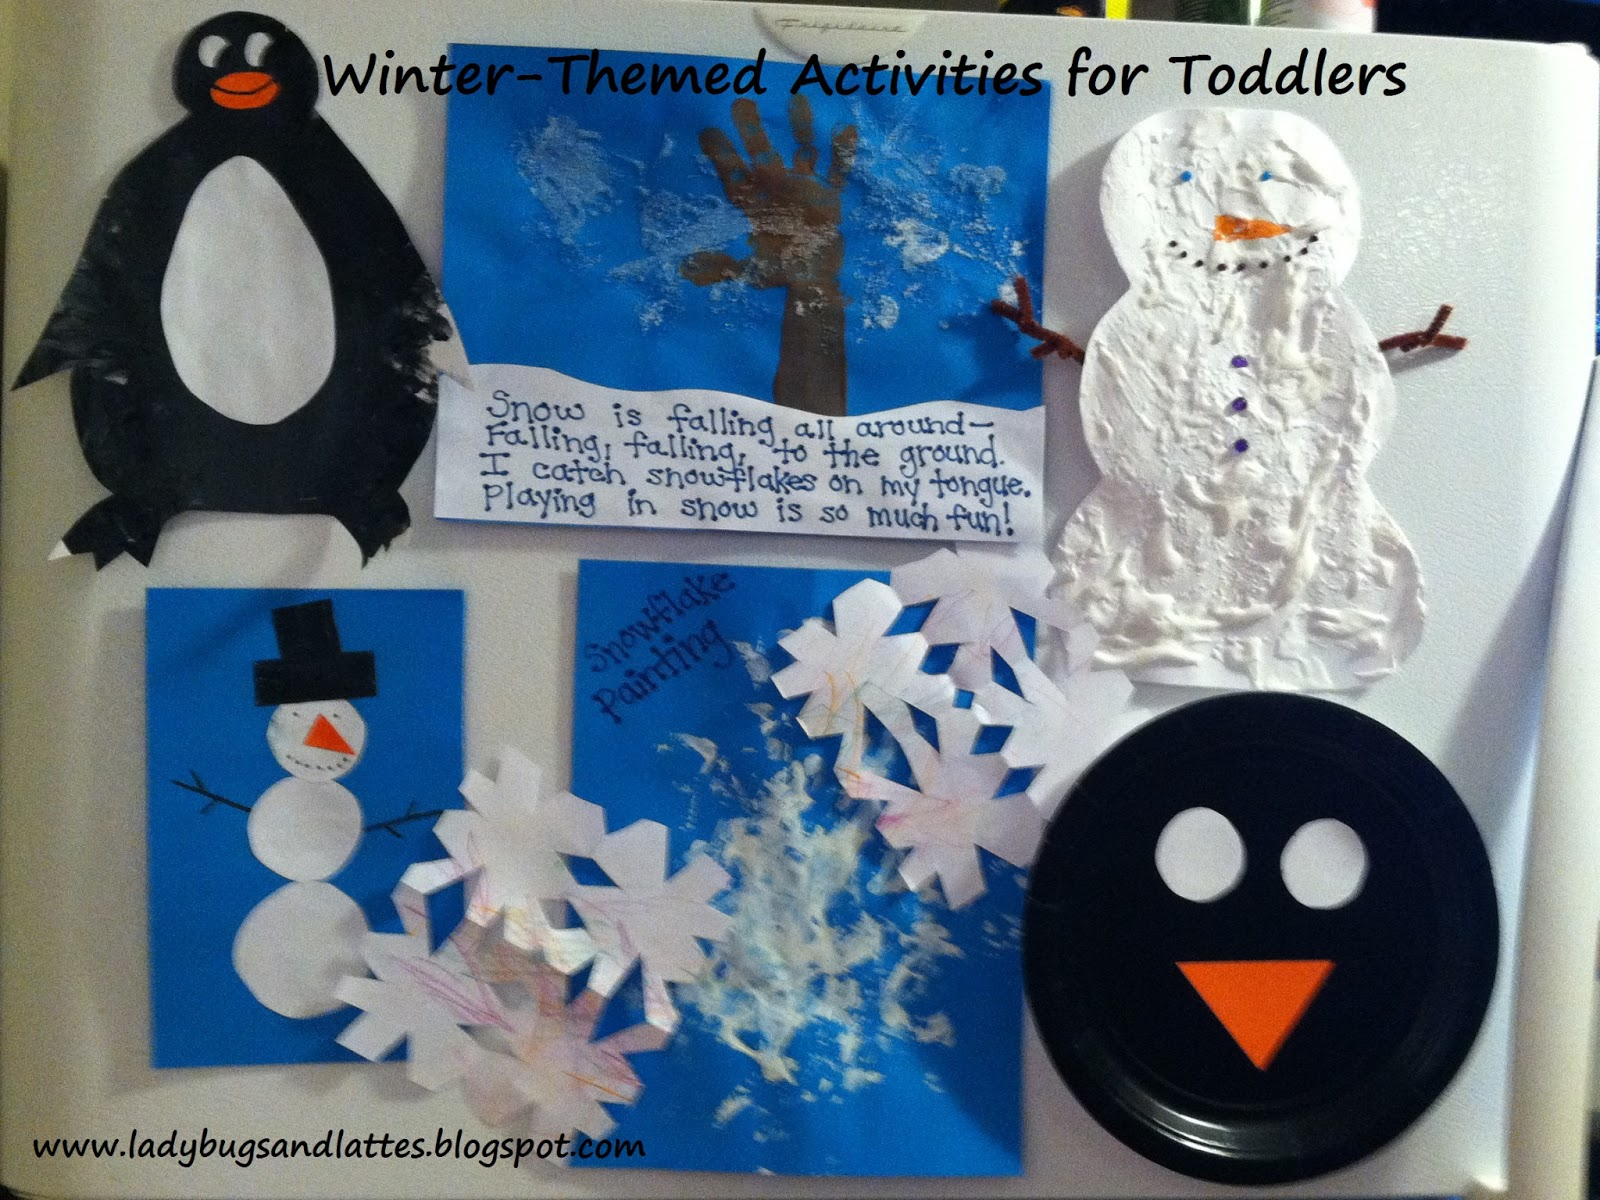 Ladybugs And Lattes Winter Themed Activities For Toddlers